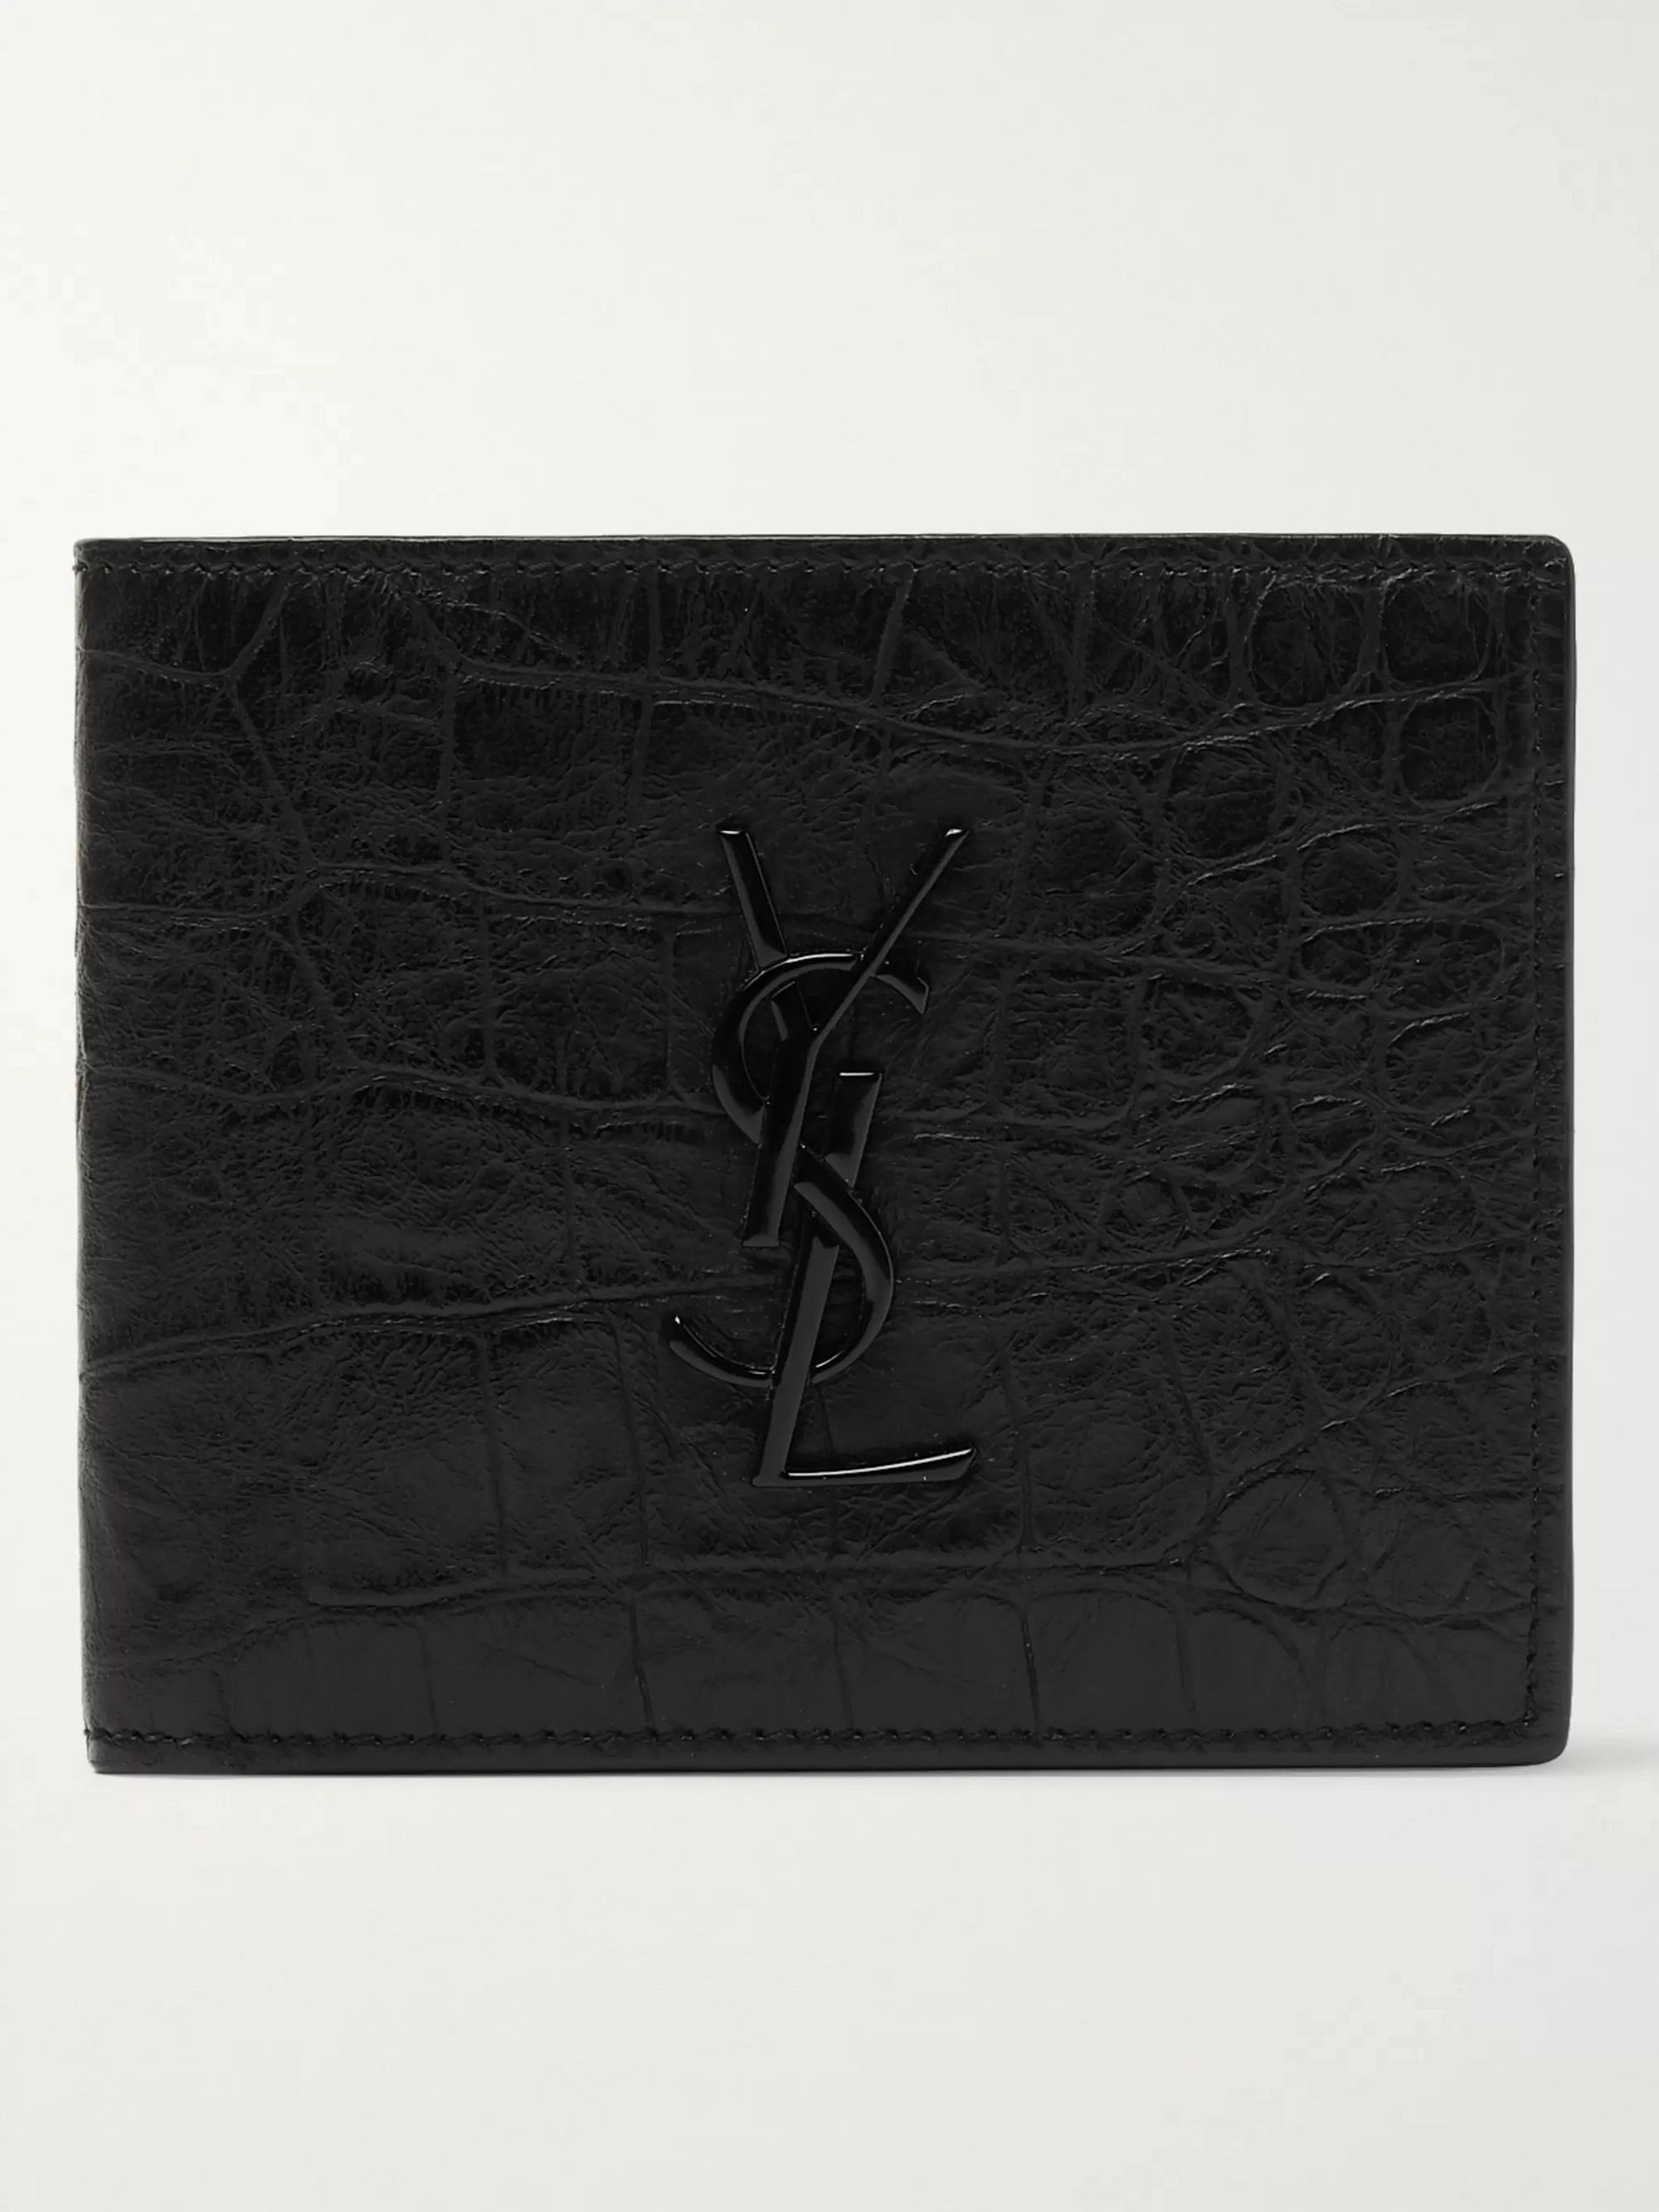 생 로랑 반지갑 Saint Laurent Logo-Appliqued Croc-Effect Leather Billfold Wallet,Black